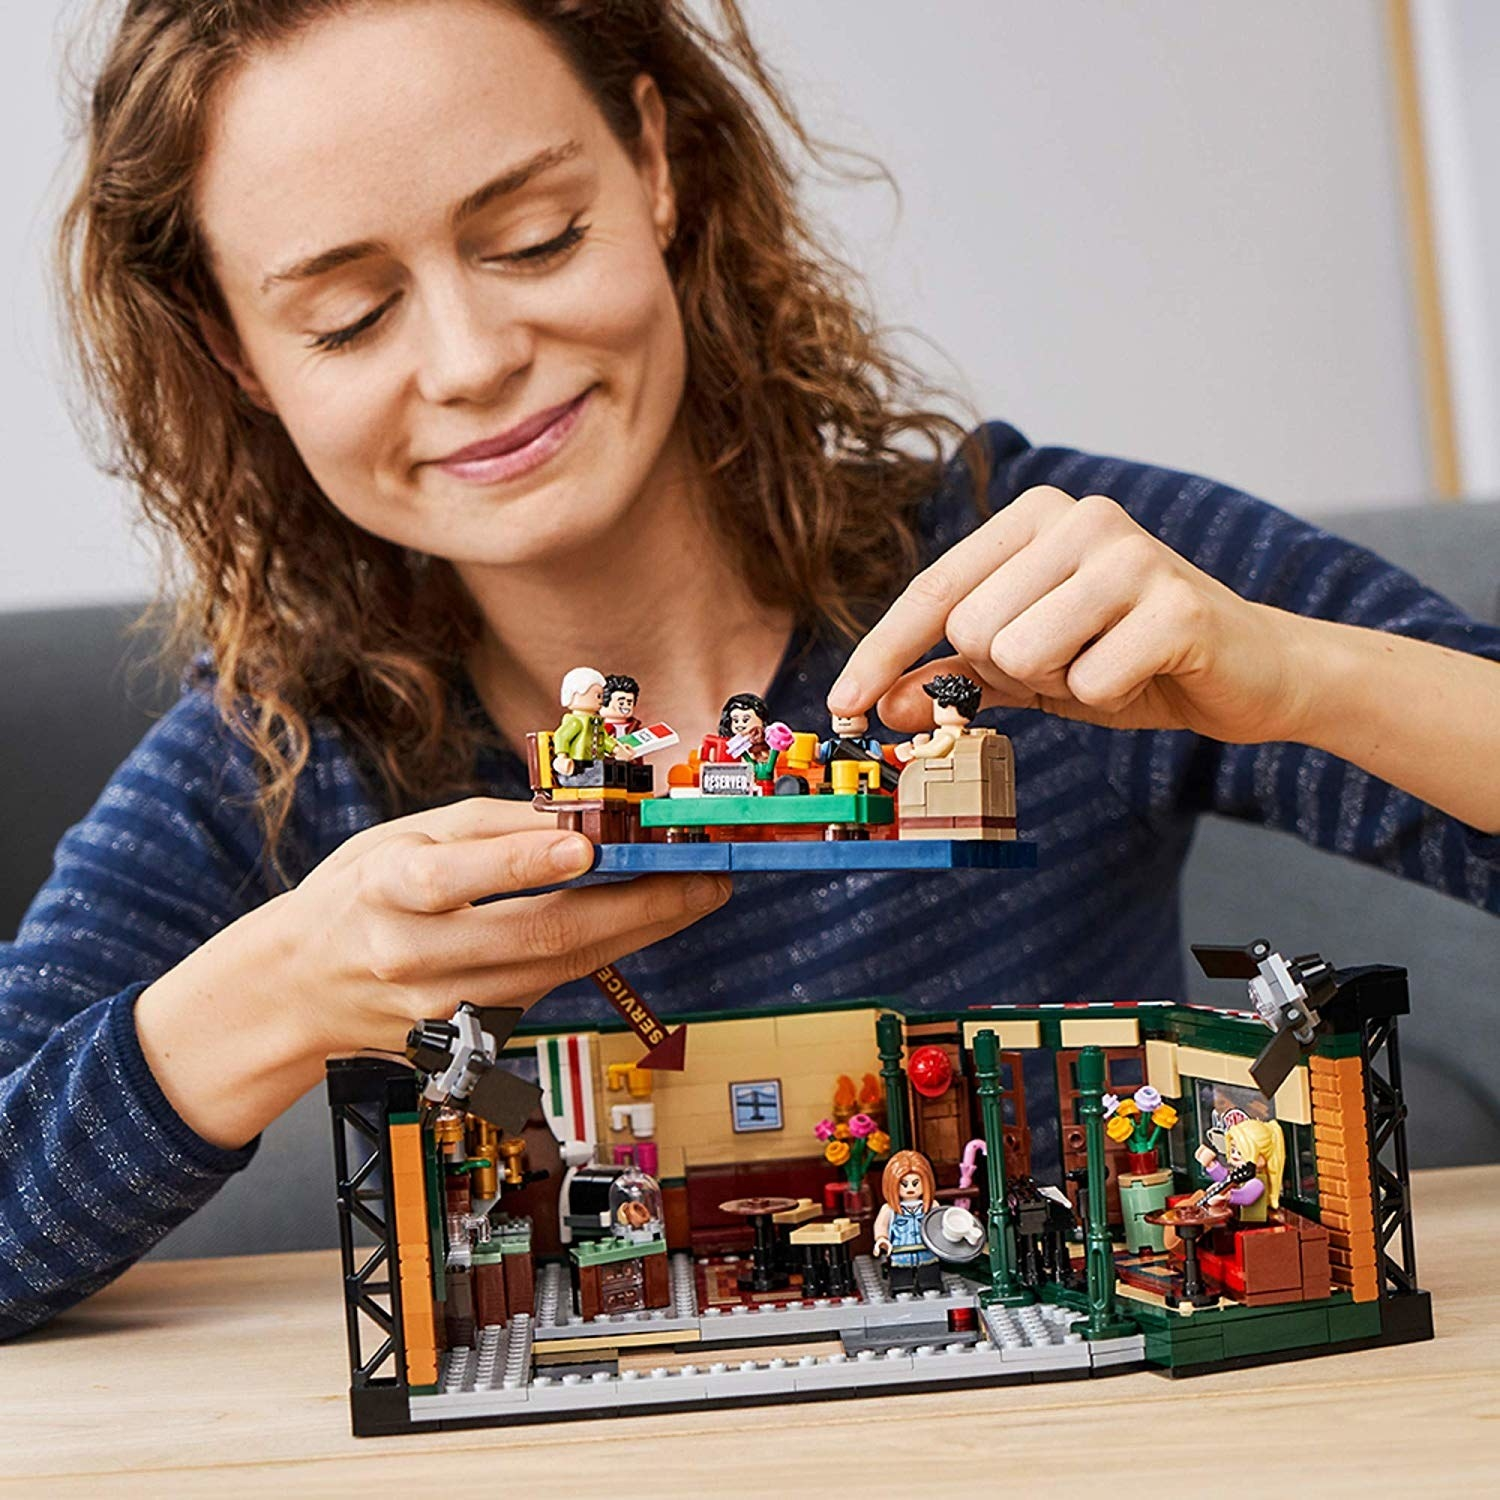 a model playing with a lego set that looks like the friends at central perk